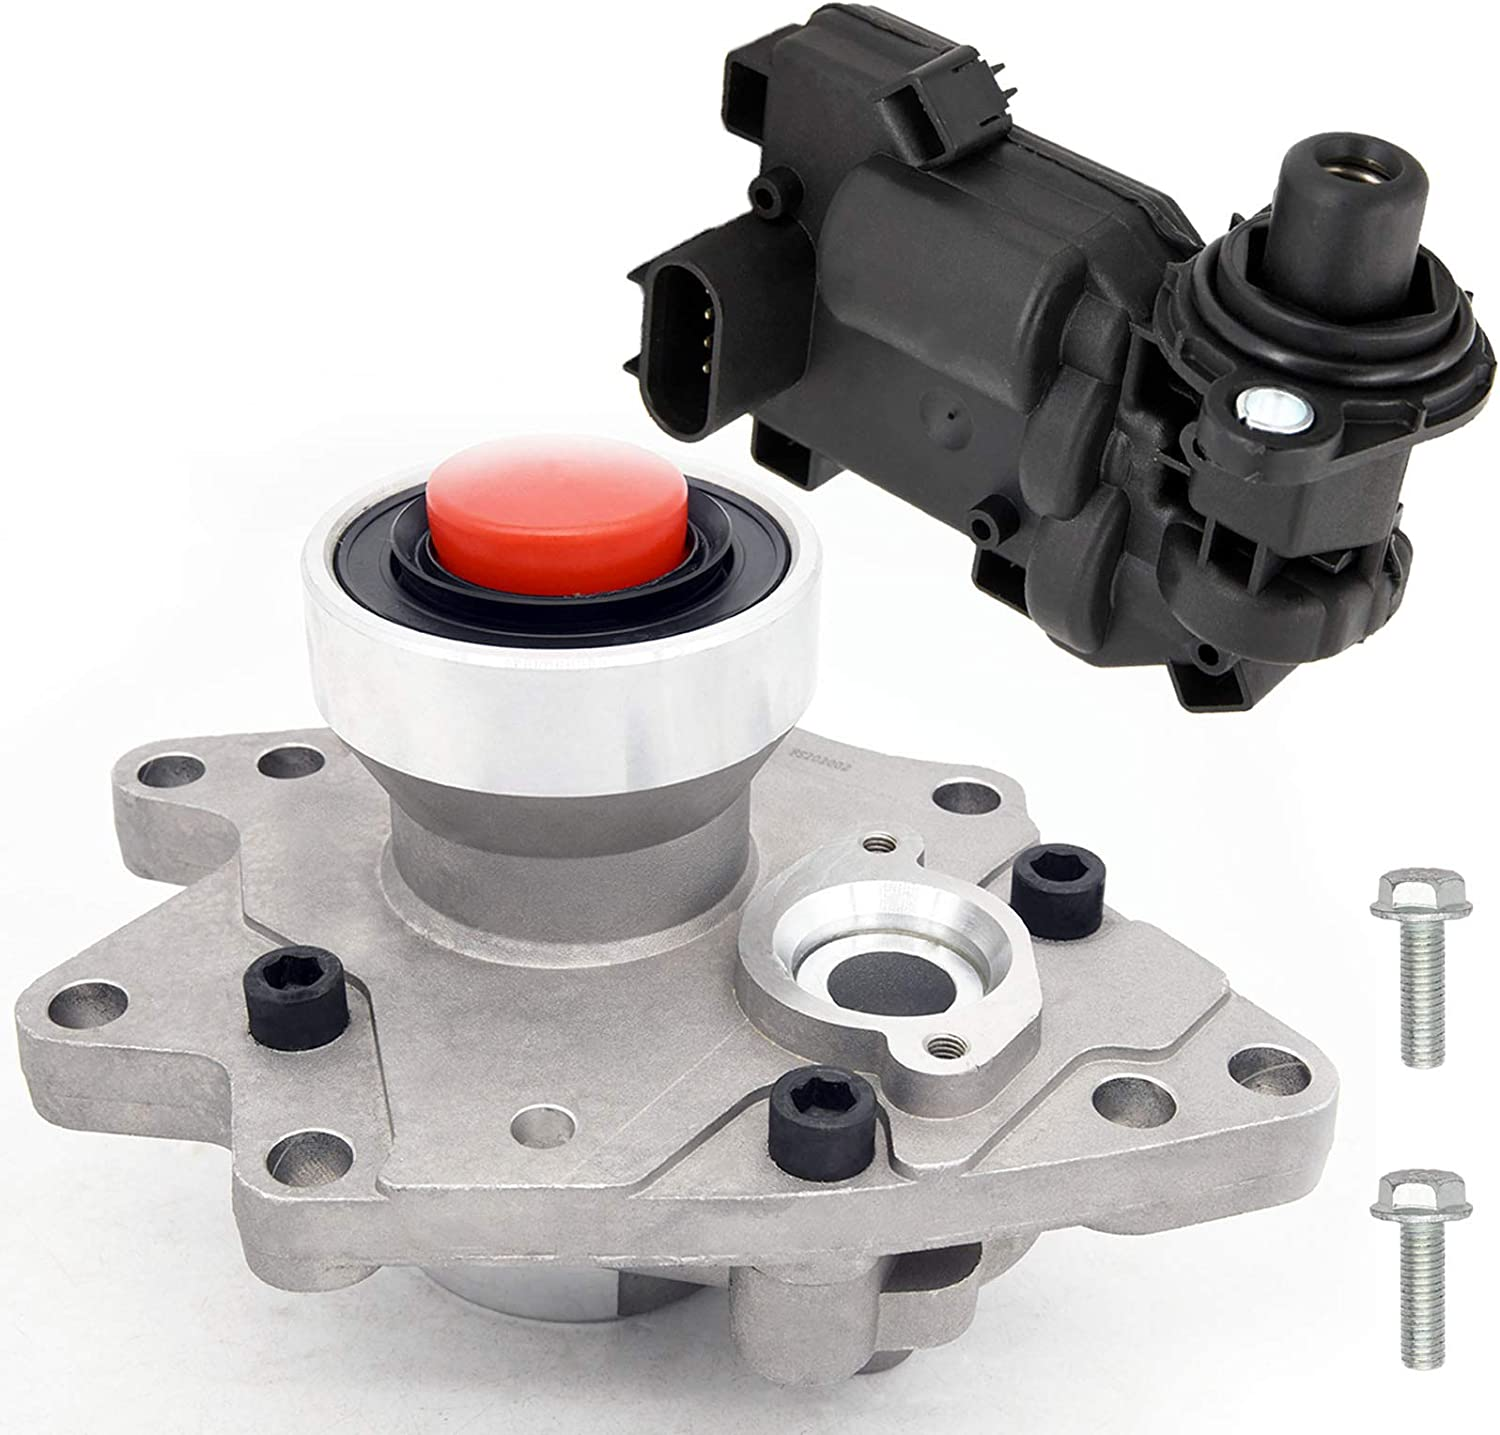 discount 600-115 4WD Surprise price Front Differential Axle Disconnect Assy Actuator Co